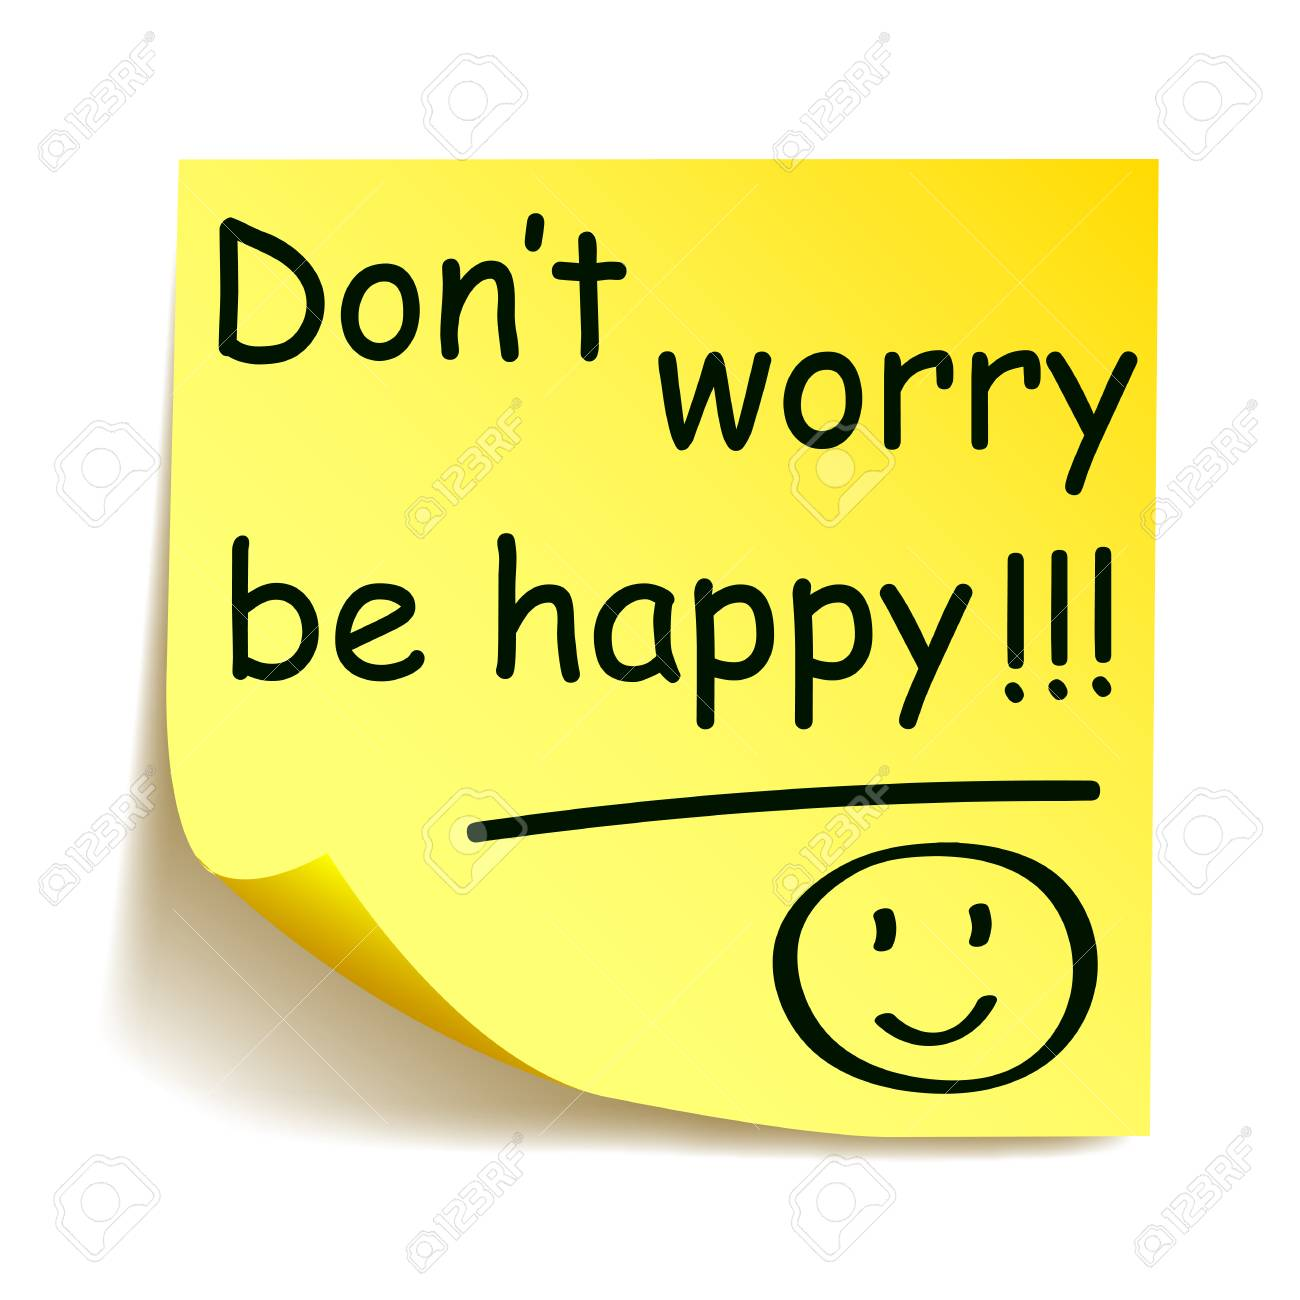 Vector yellow sticker with black postit dont worry be happy note hand written stock vector